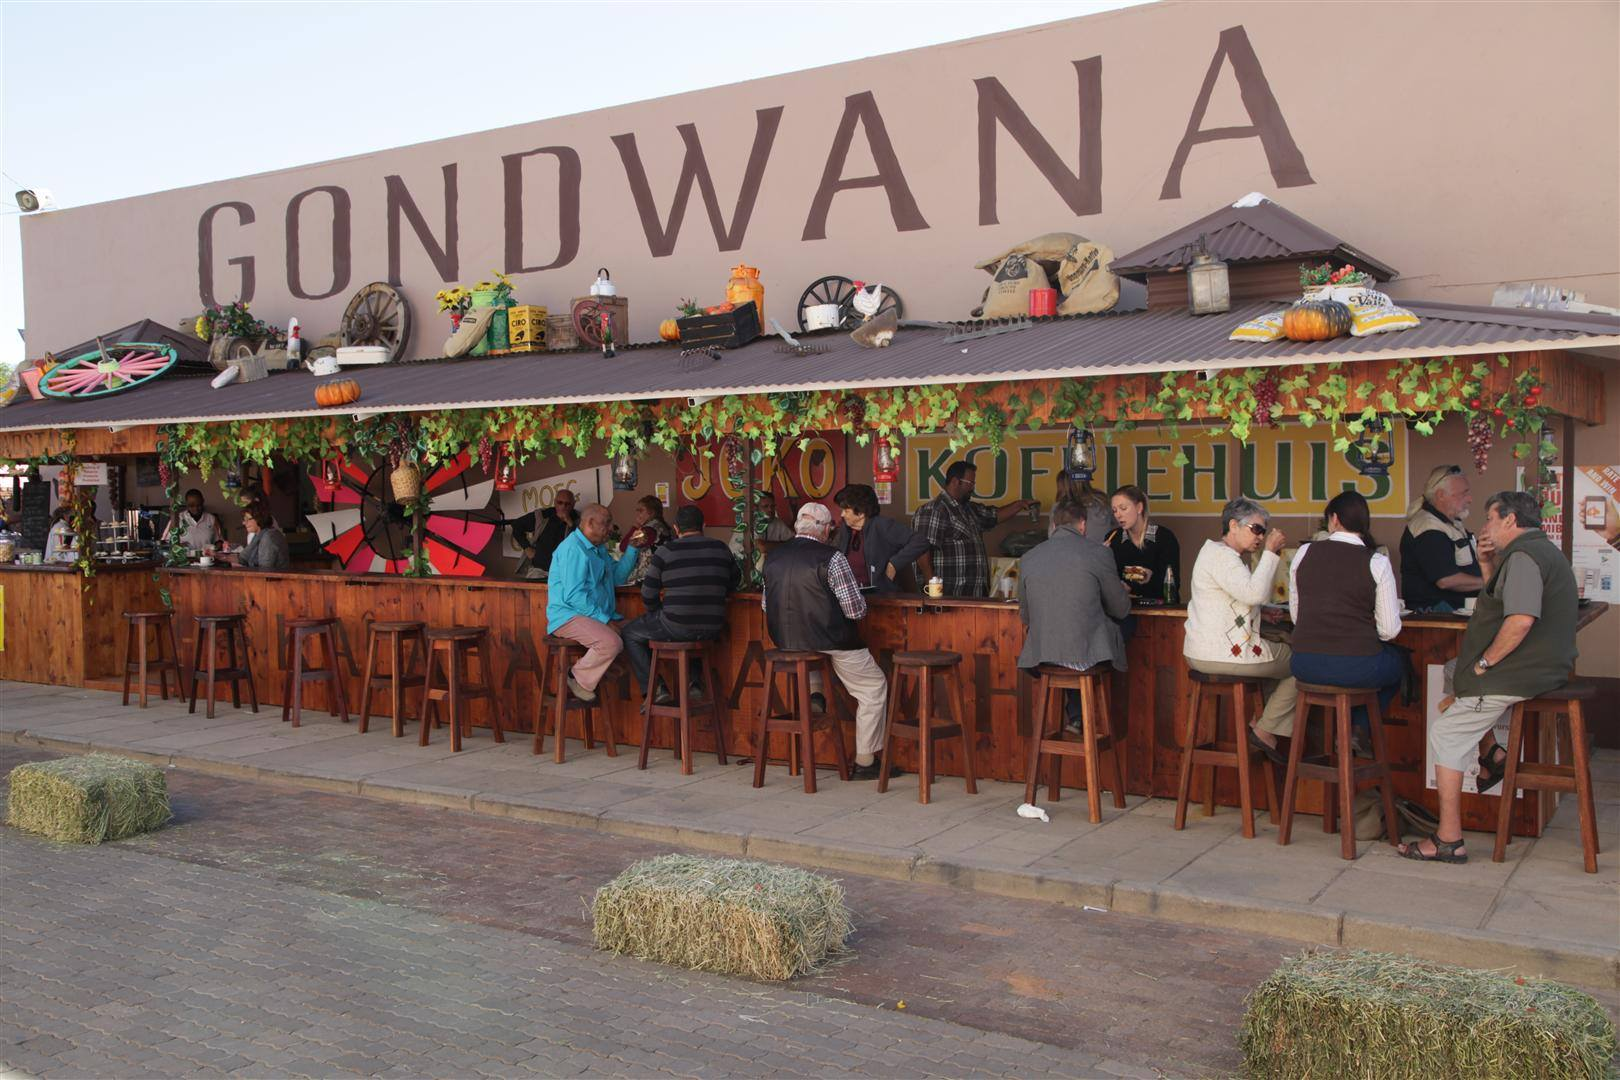 Best in show: Tourism: Gondwana (Photo courtesy of Namibia Tourism Expo 2014 FB page)